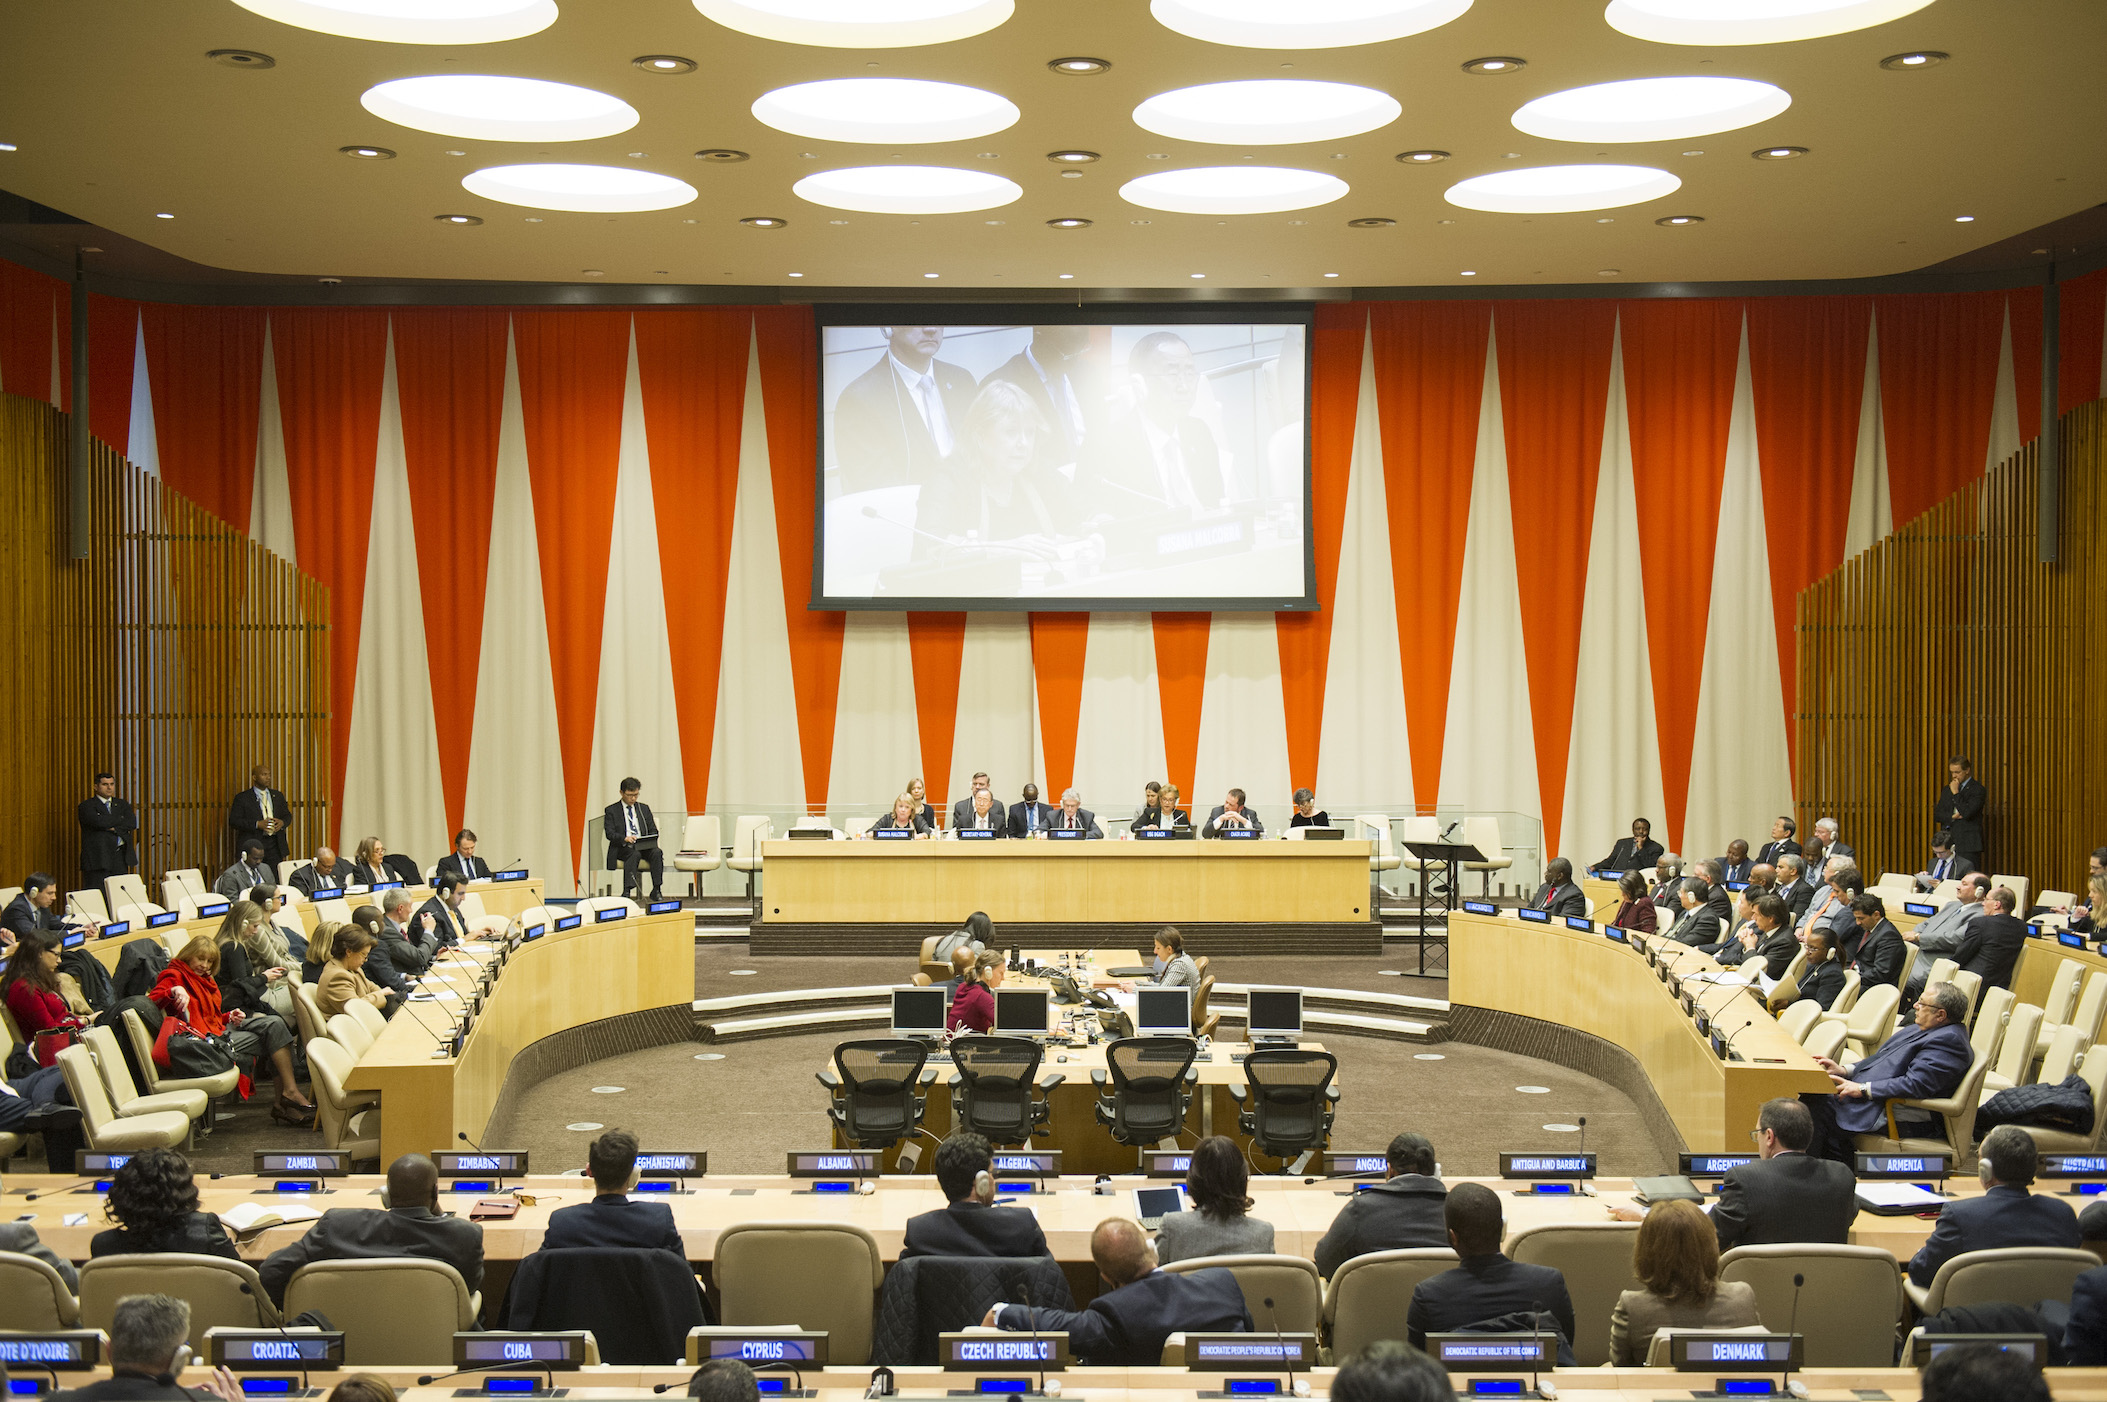 Meeting of Advisory Committee on Administrative and Budgetary Questions on the UN Budget